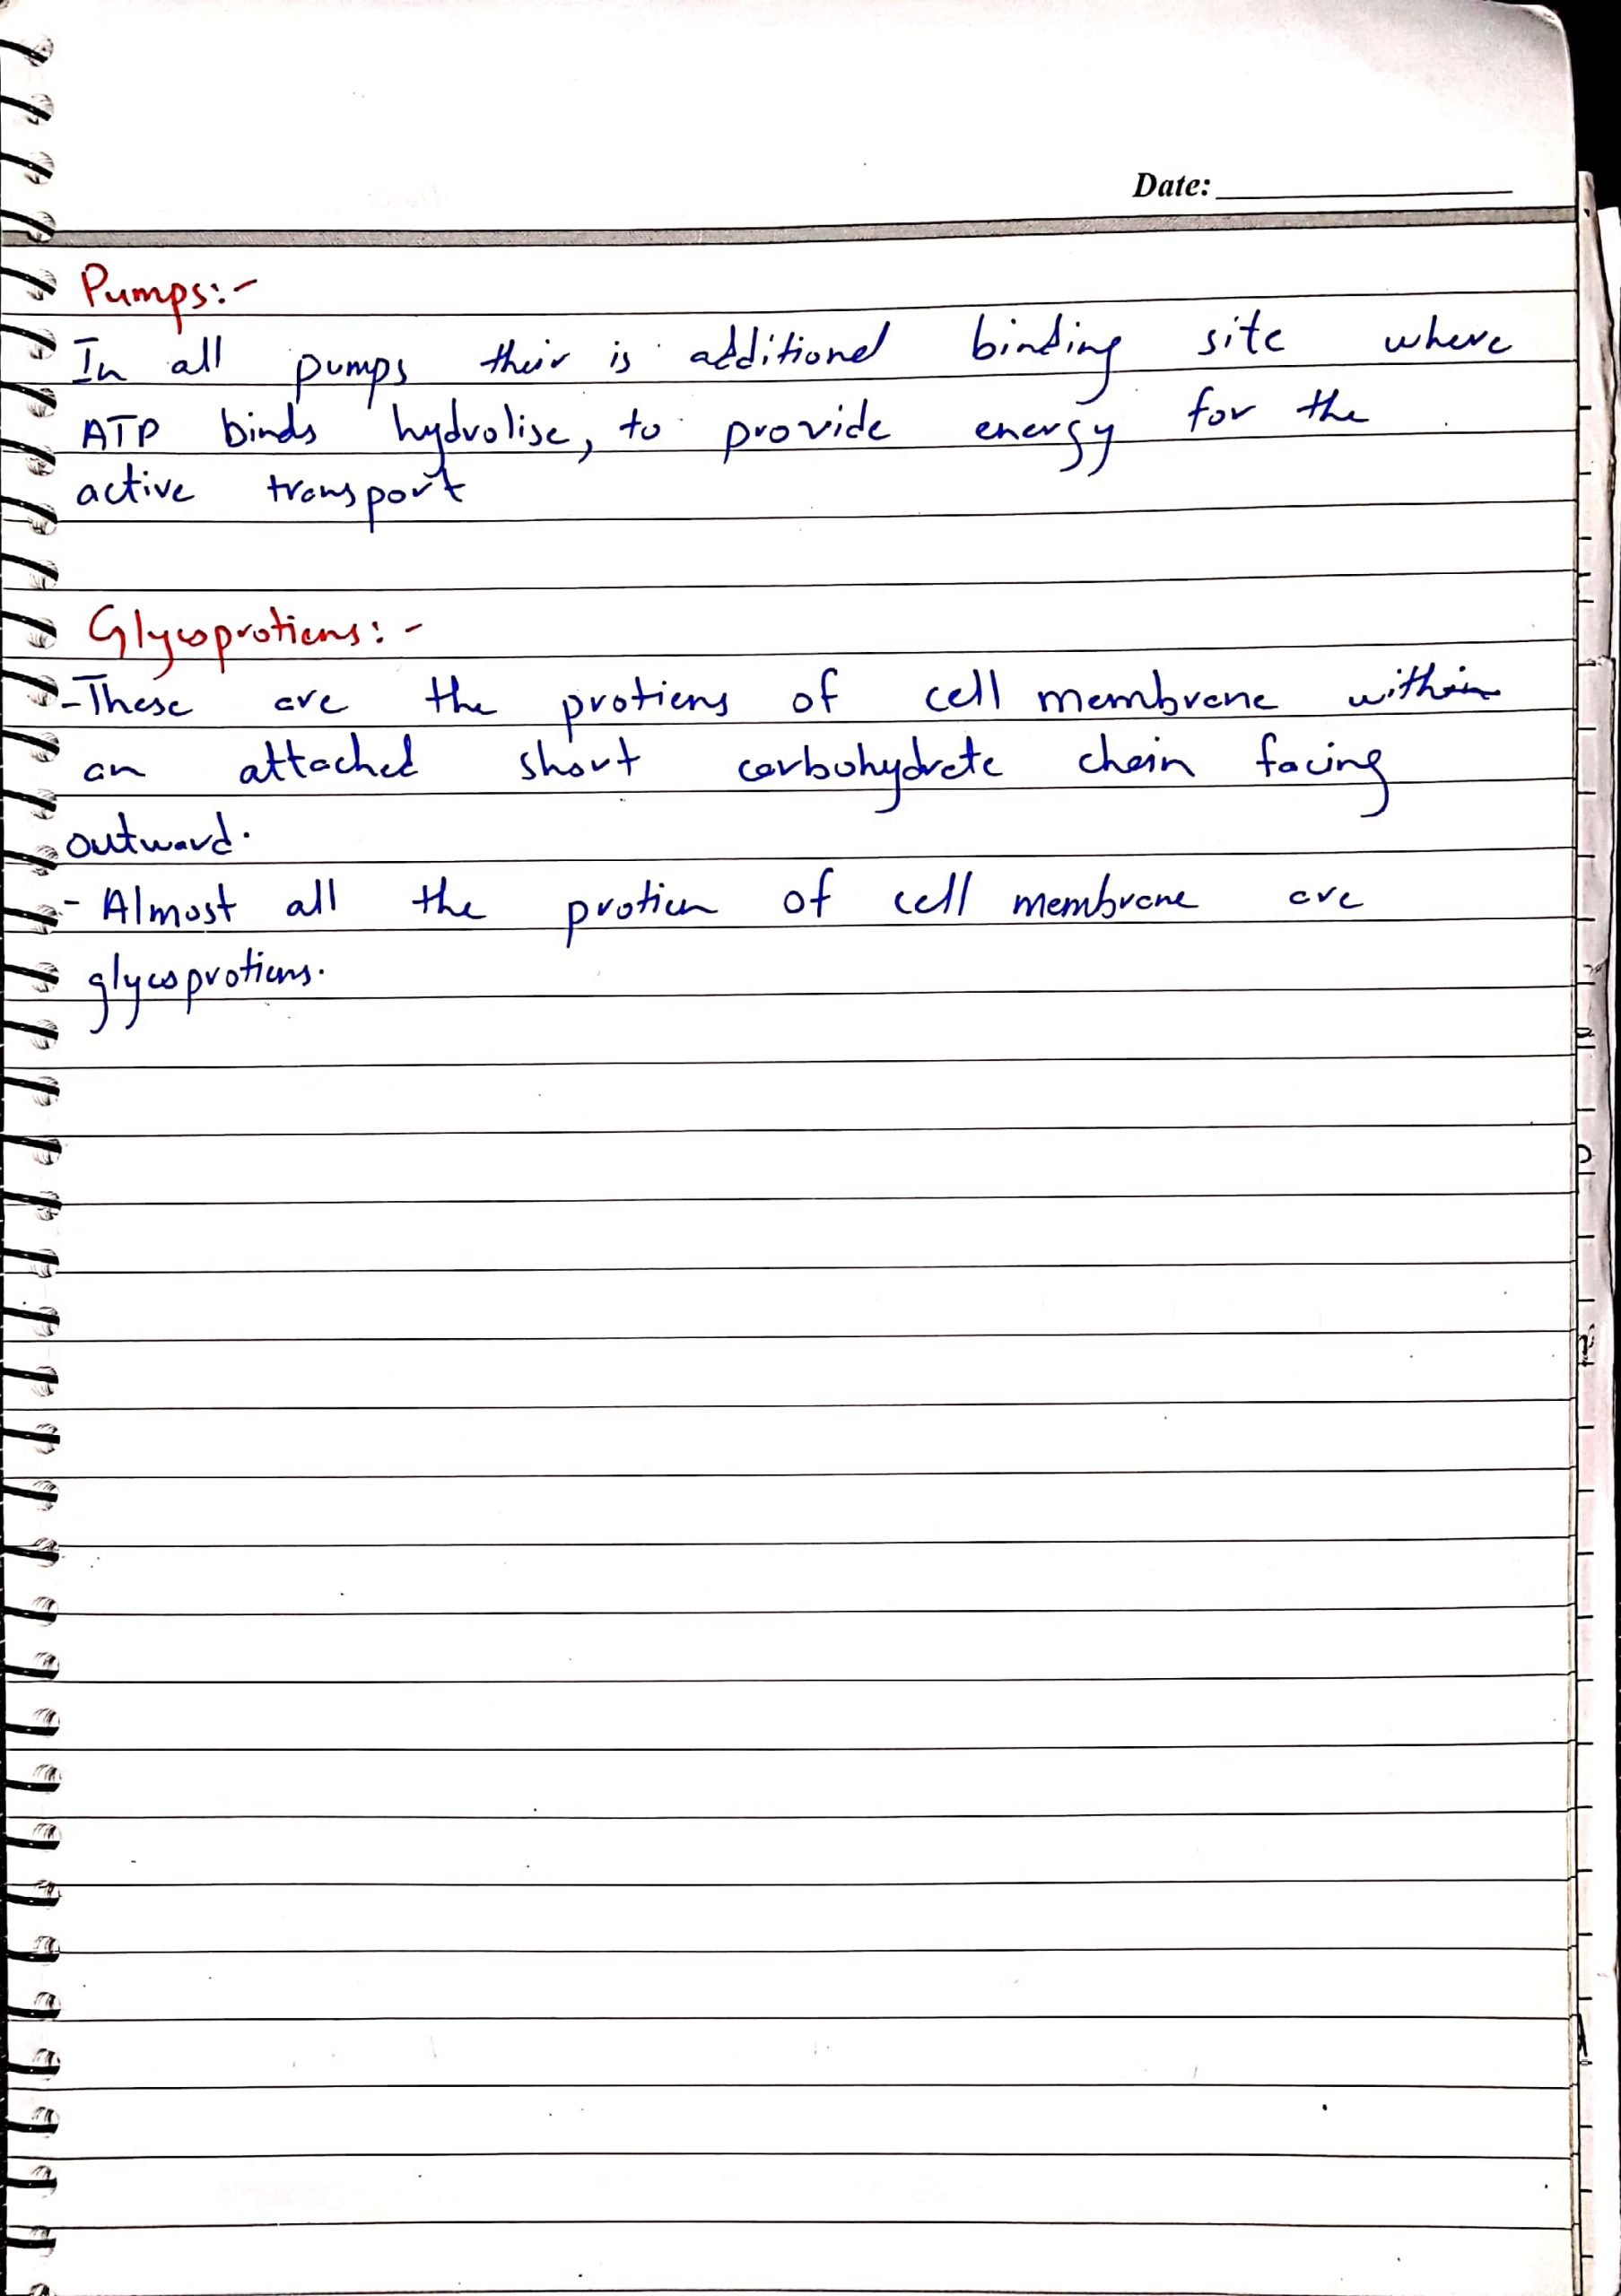 As biology notes by Dr Husnain chap Cell Membrane_7